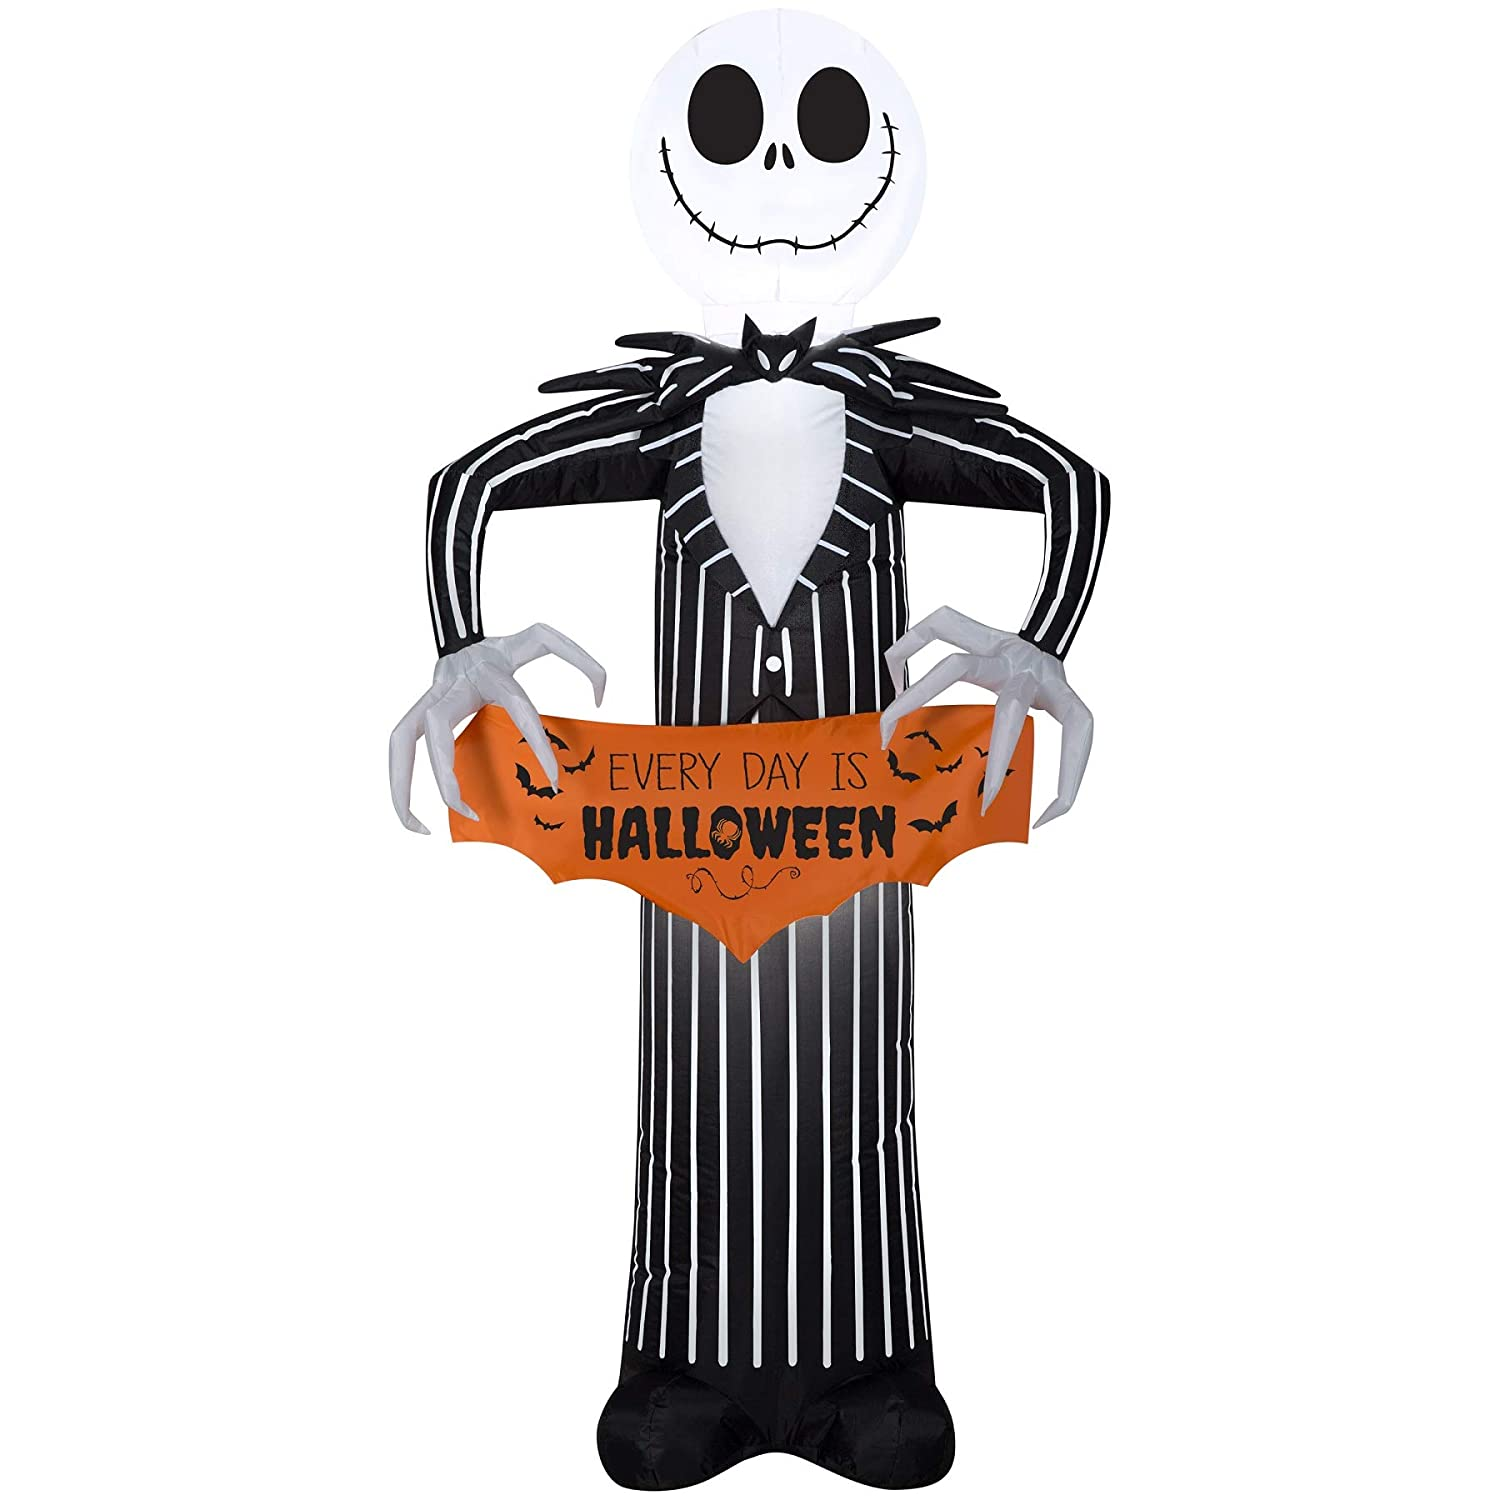 Halloween Inflatable Disney 5' Jack Skellington The Nightmare Before Christmas Airblown Decoration Gemmy